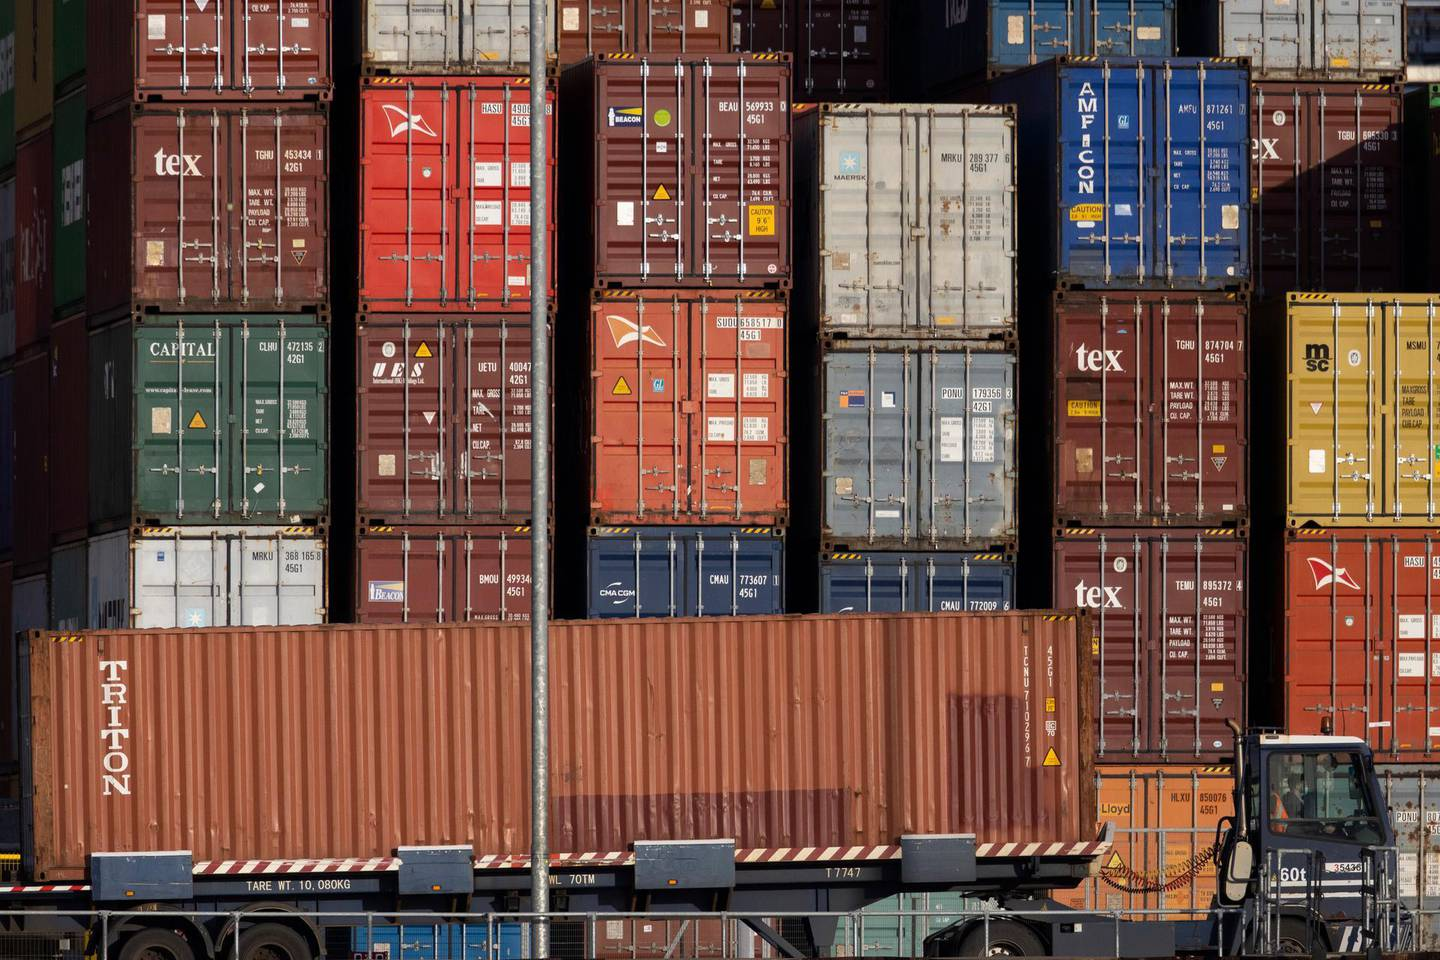 """FELIXSTOWE, ENGLAND - NOVEMBER 16: Crates are stacked at Felixtowe Port on November 16, 2020 in Felixstowe, England. Shipping companies and retailers have complained of delays in unloading arriving freight, with one ship told it could wait up to 10 days for a berthing slot. The port's owner, Hutchison Ports UK, said """"the imbalance in UK trade and Brexit stockpiling exacerbate current operational challenges and we are working with our customers and stakeholders to get through the current congestion."""" (Photo by Dan Kitwood/Getty Images)"""